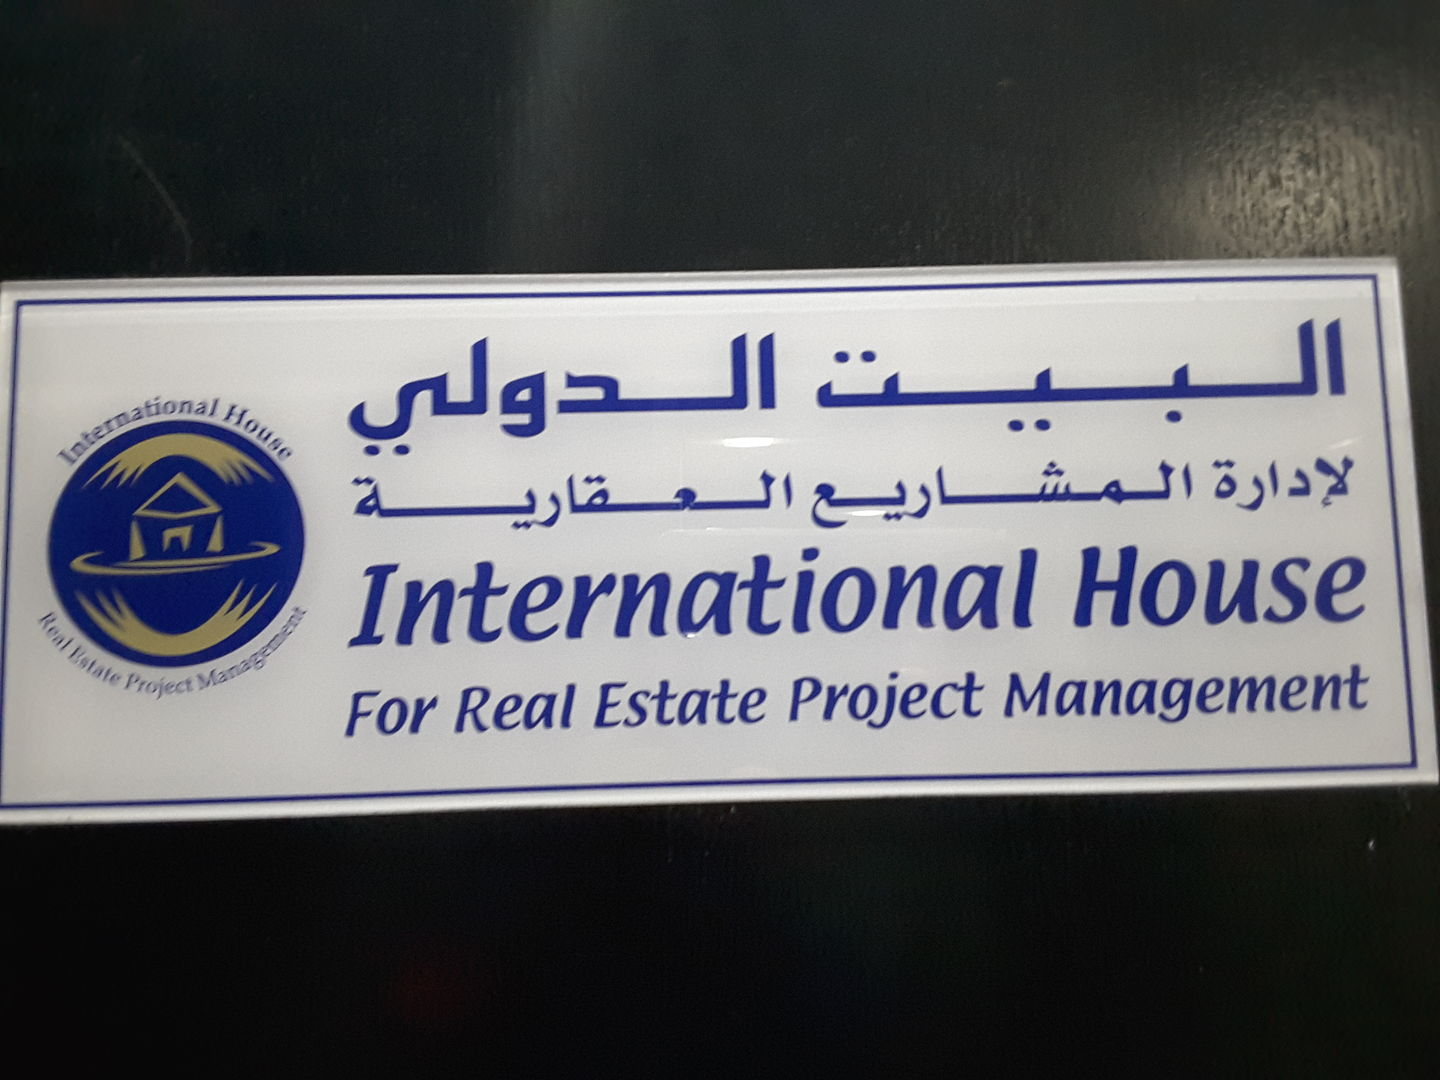 HiDubai-business-international-house-real-estate-projects-management-housing-real-estate-property-management-business-bay-dubai-2